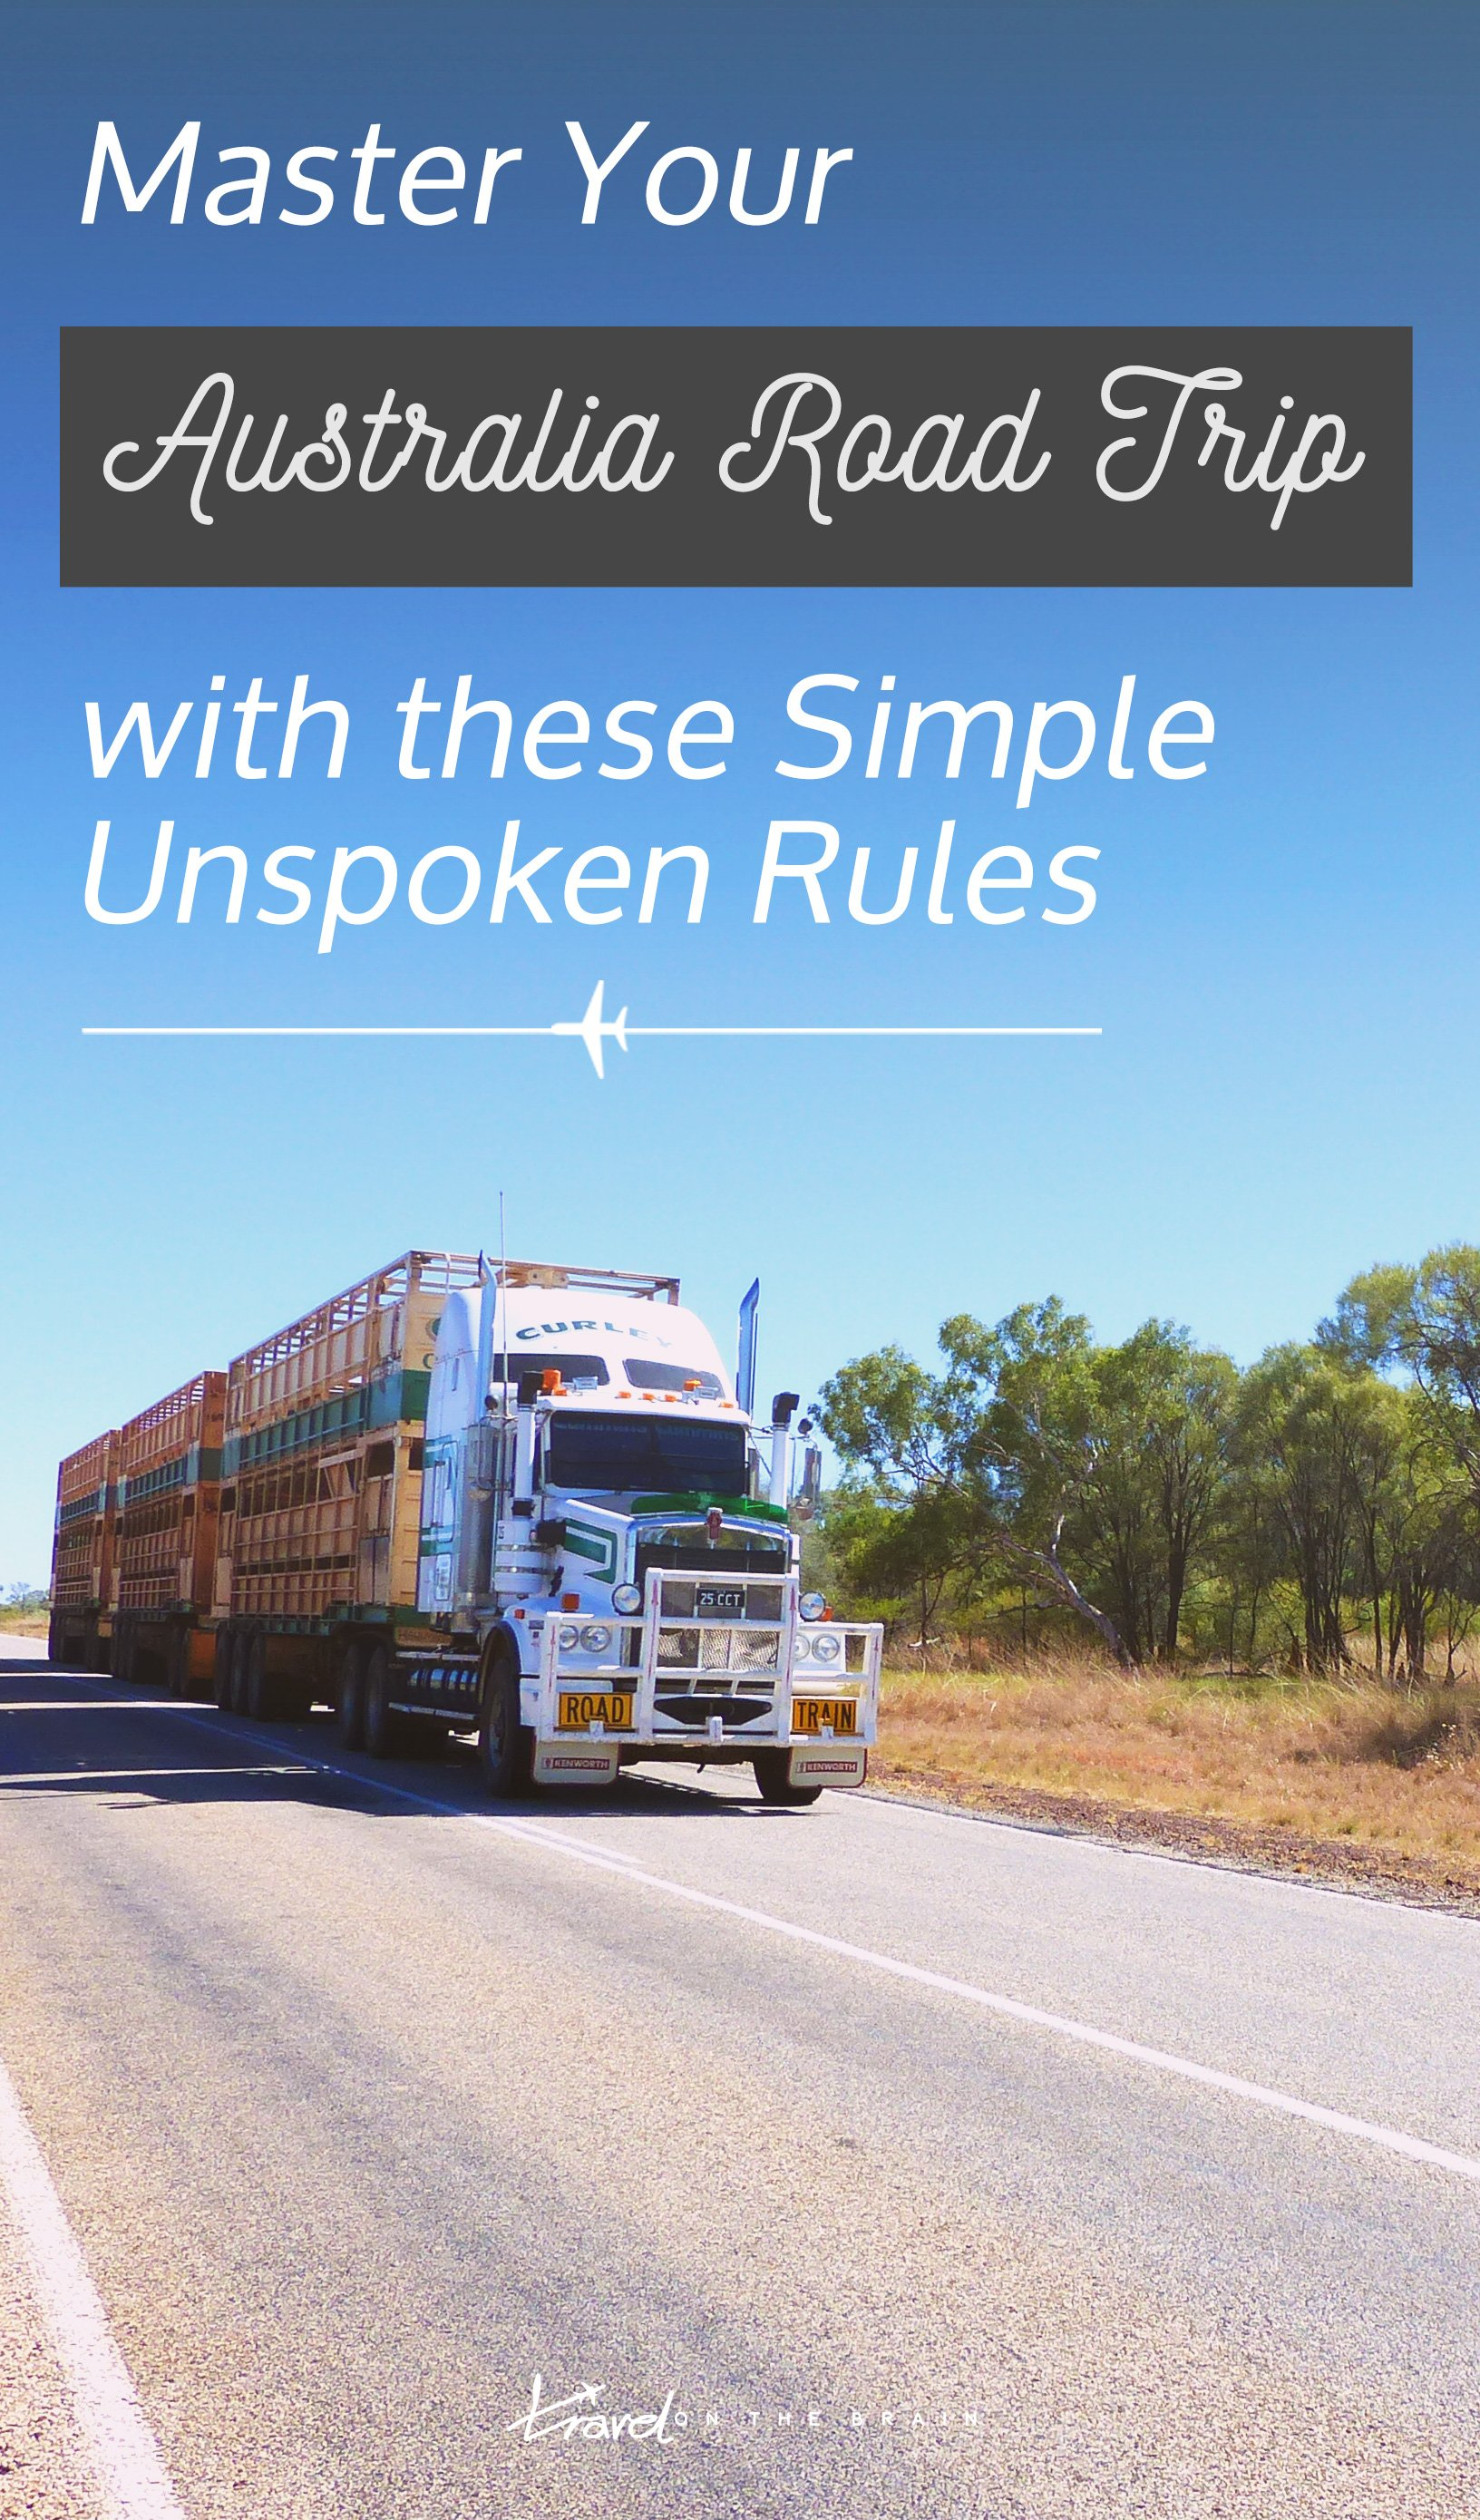 Master Your Australian Road Trip with these Simple Unspoken Rules. Did you know them?